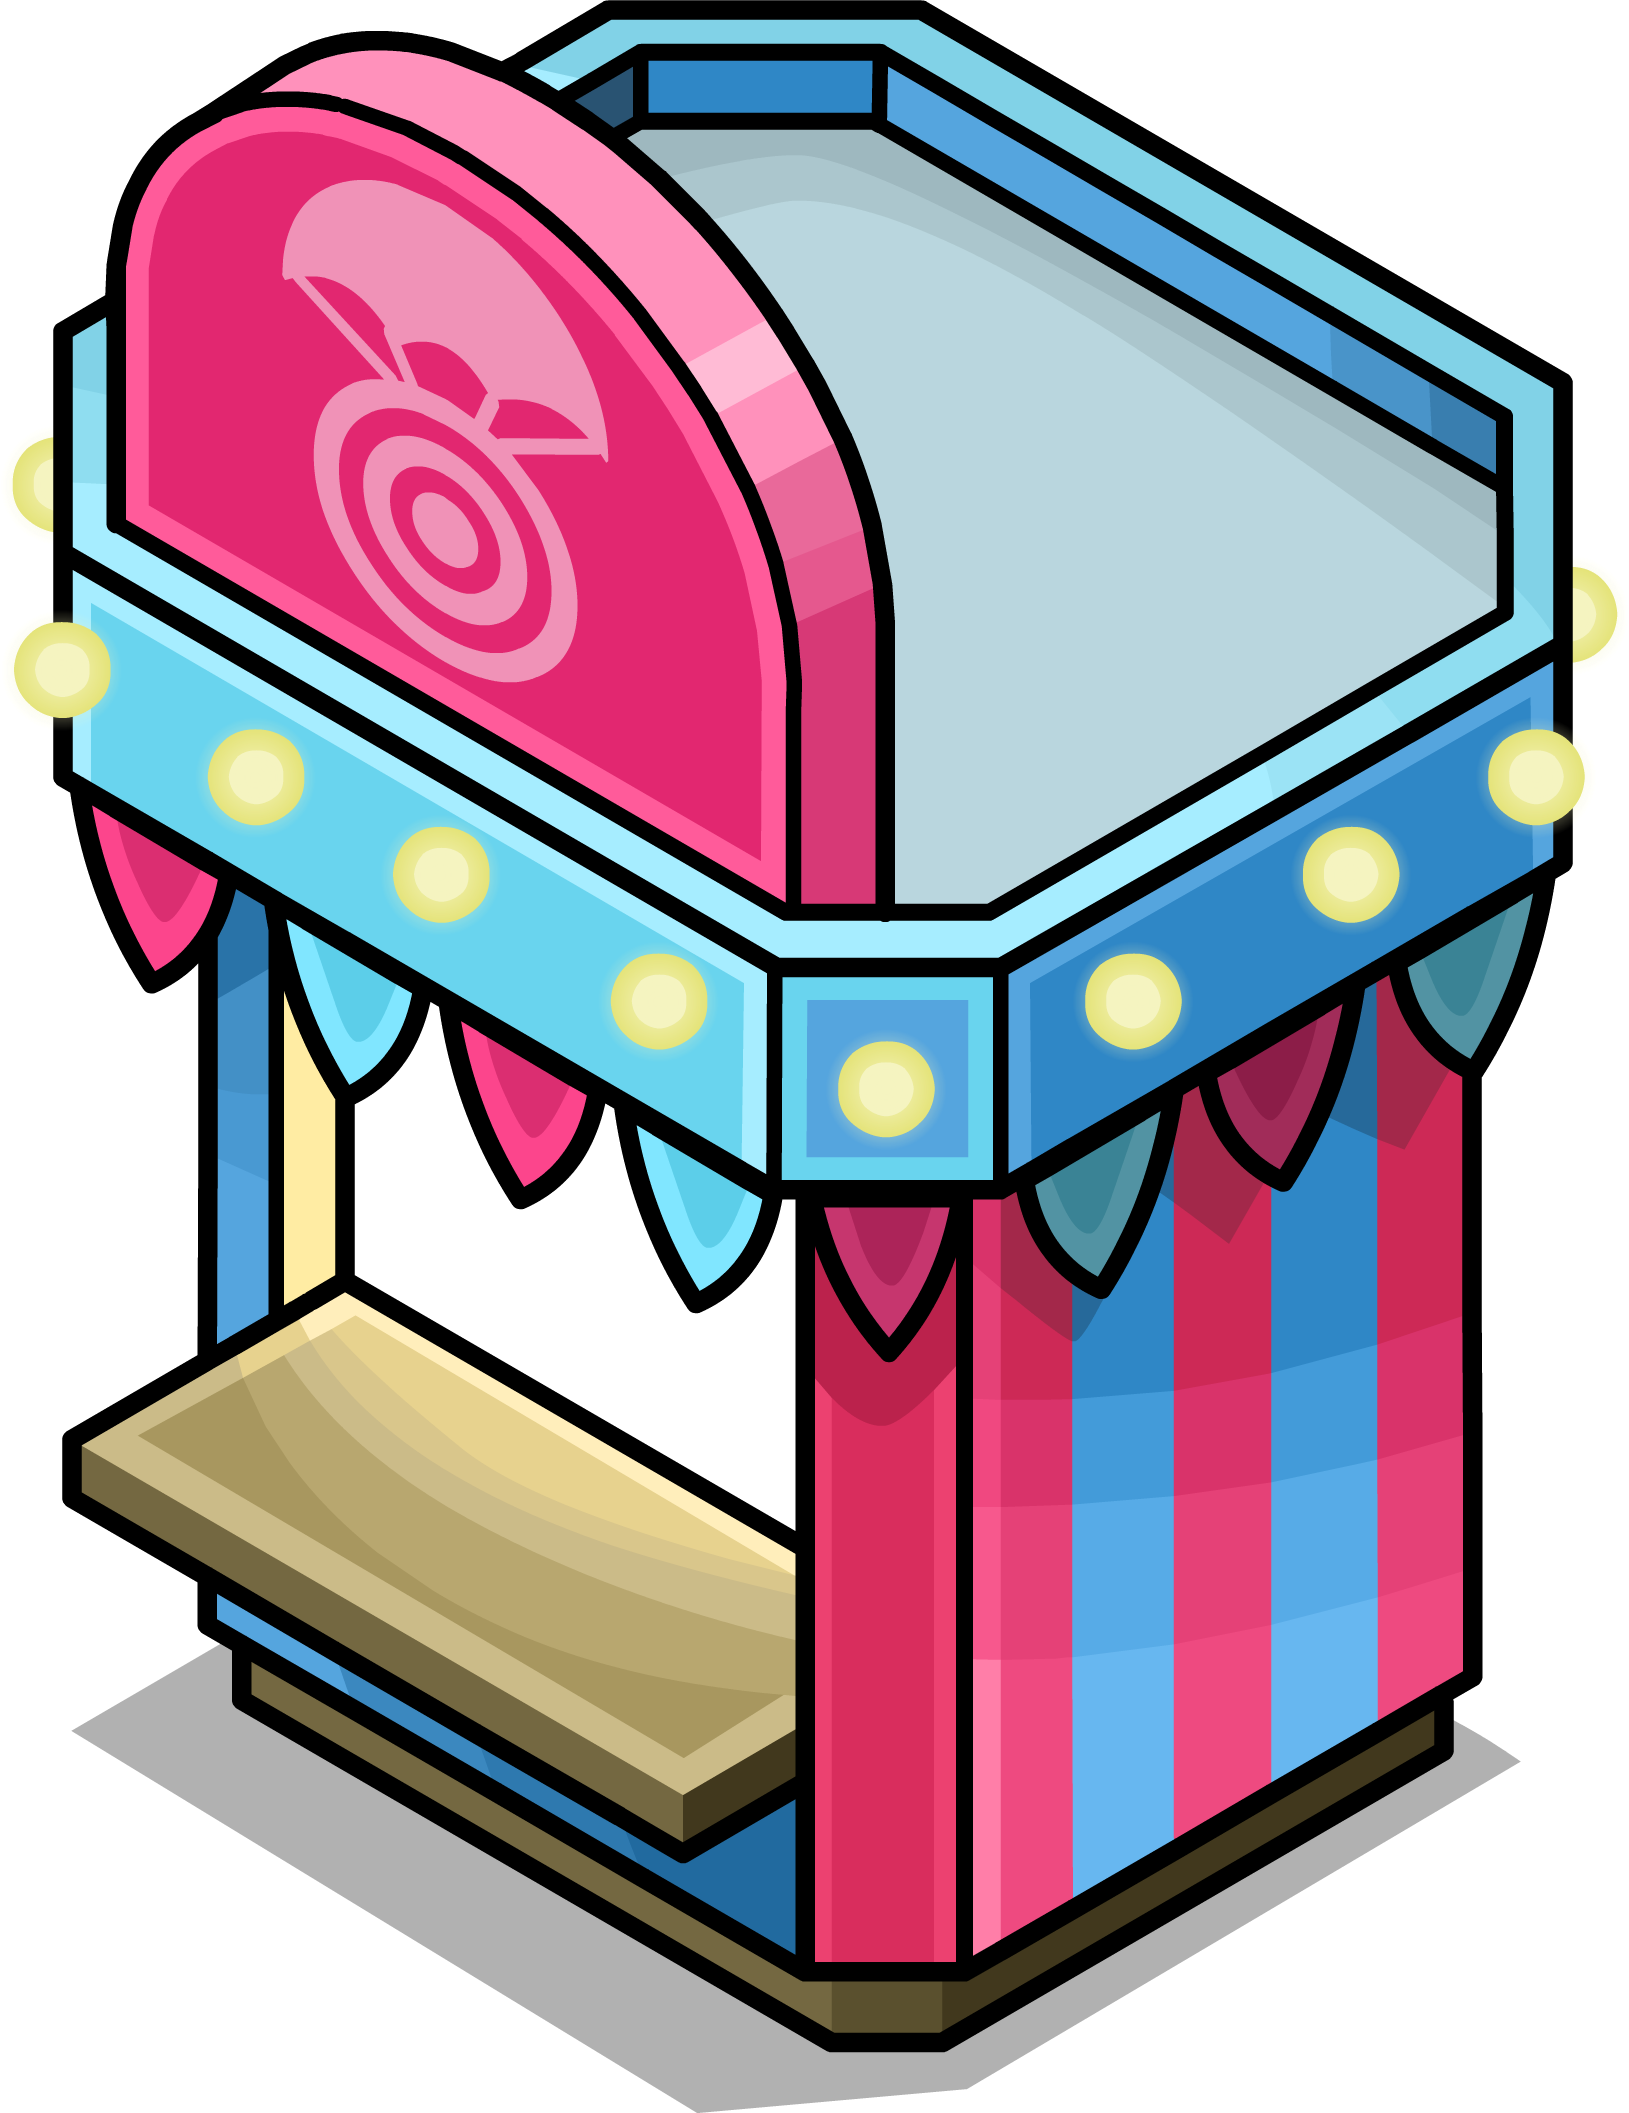 Clipart balloon booth. Image pop sprite png